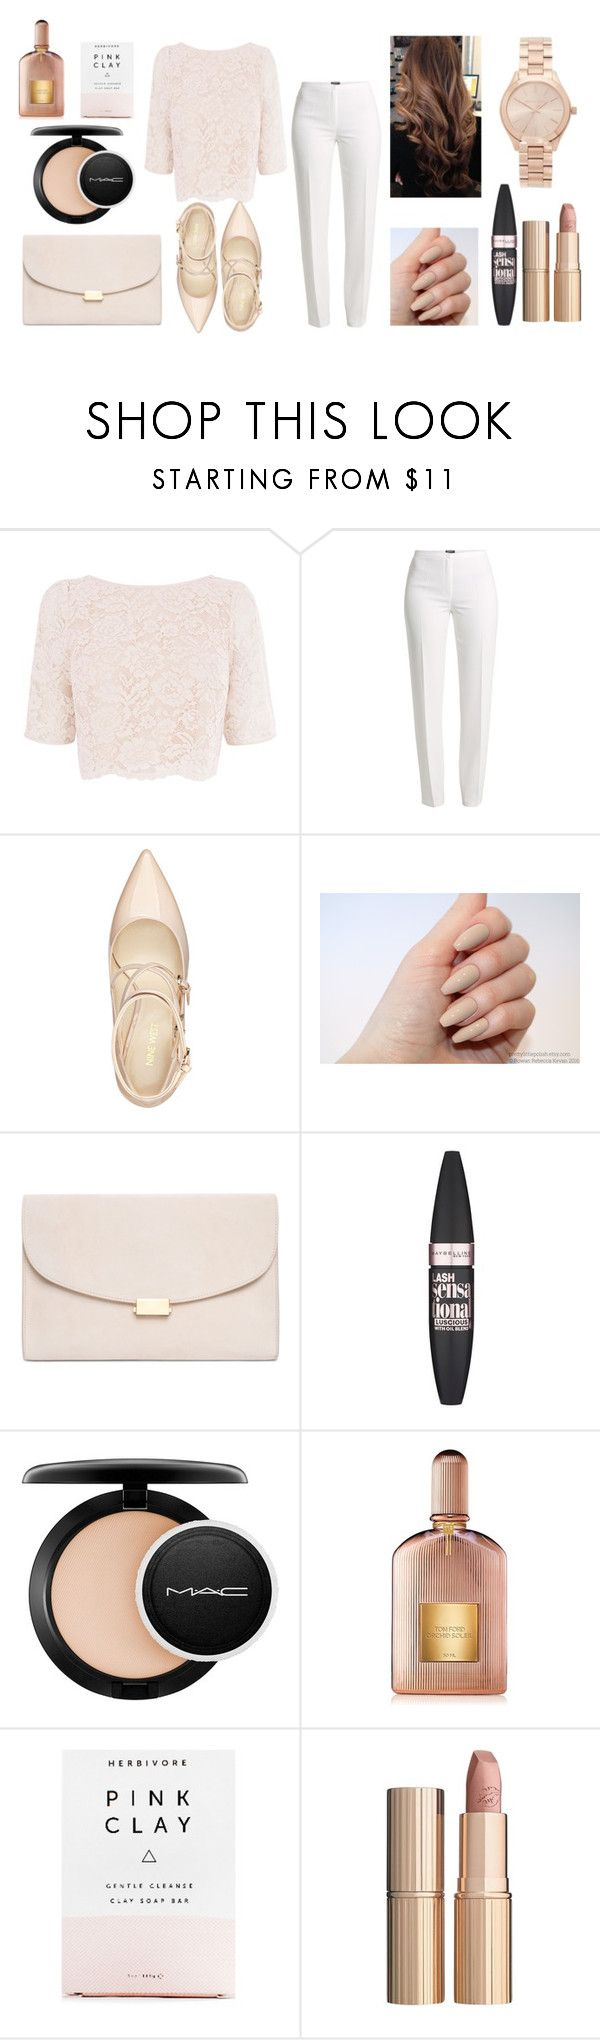 """Pink Clay"" by nikkiemery ❤ liked on Polyvore featuring Coast, Basler, Nine West, Mansur Gavriel, Maybelline, MAC Cosmetics, Tom Ford, Herbivore, Charlotte Tilbury and Michael Kors"